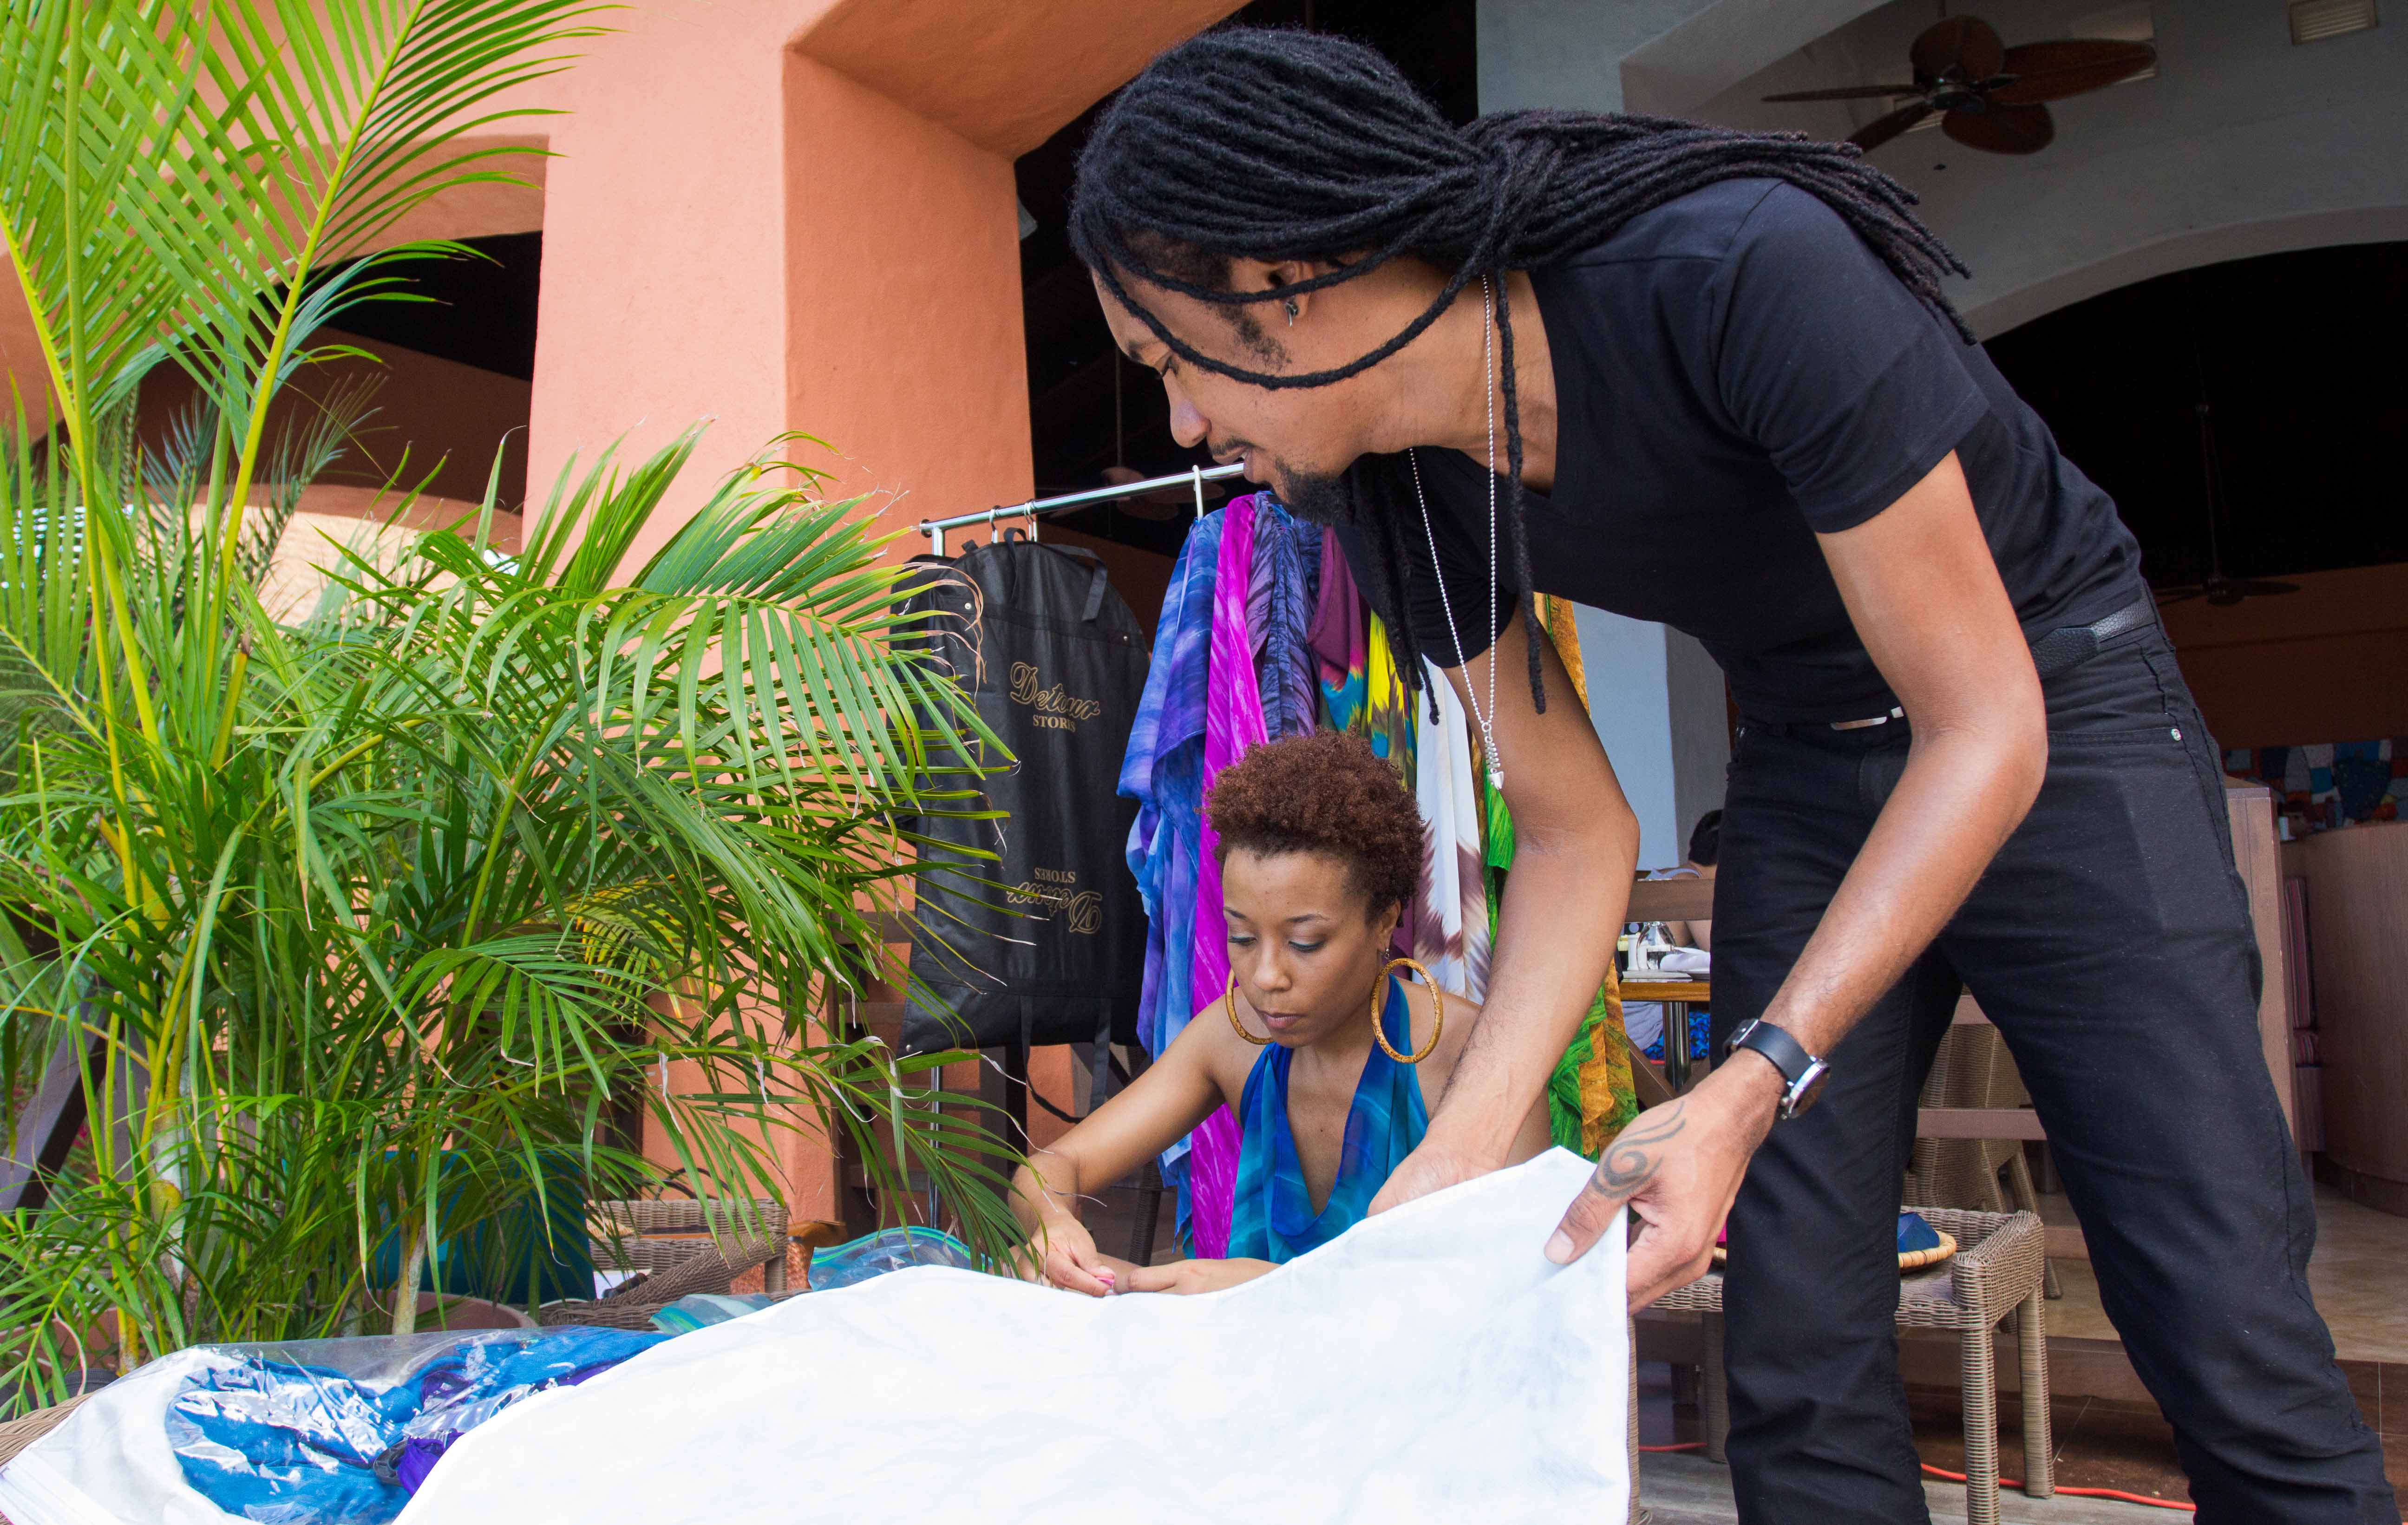 NOV 2012: Kaj's executive team, CEO/Director, Liza Miller, and President/Creative Director, Ayoung-Julien, prepare the Kaj space at the trunk show during the 2012 Ocean Style FashionShowcase in Montego Bay, Jamaica. Photo courtesy Mark Gellineau.